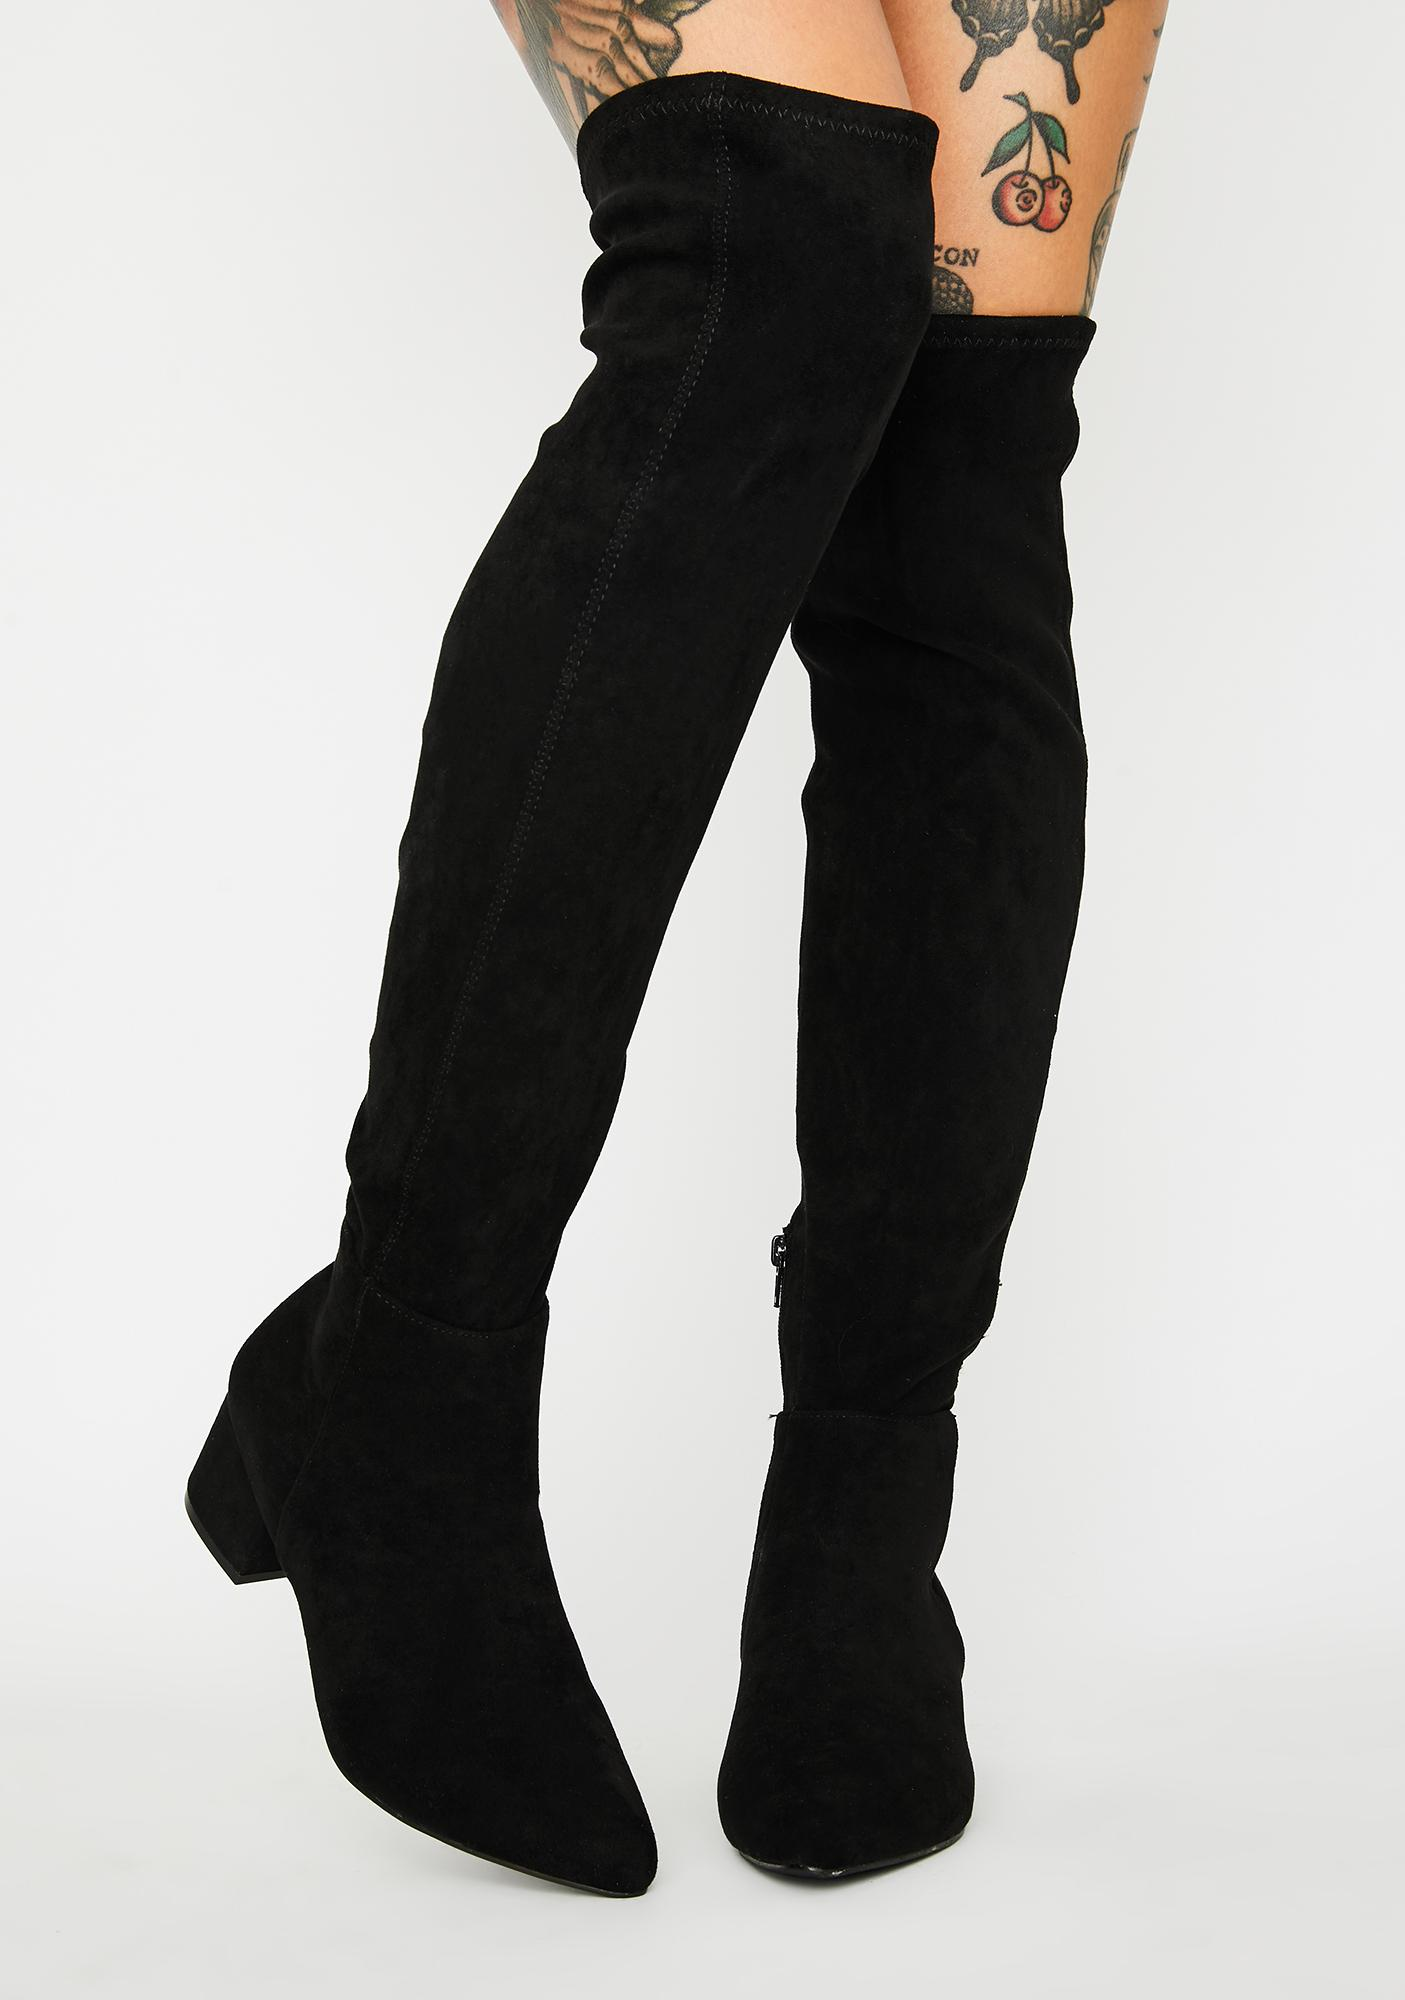 Next In Line Knee High Boots